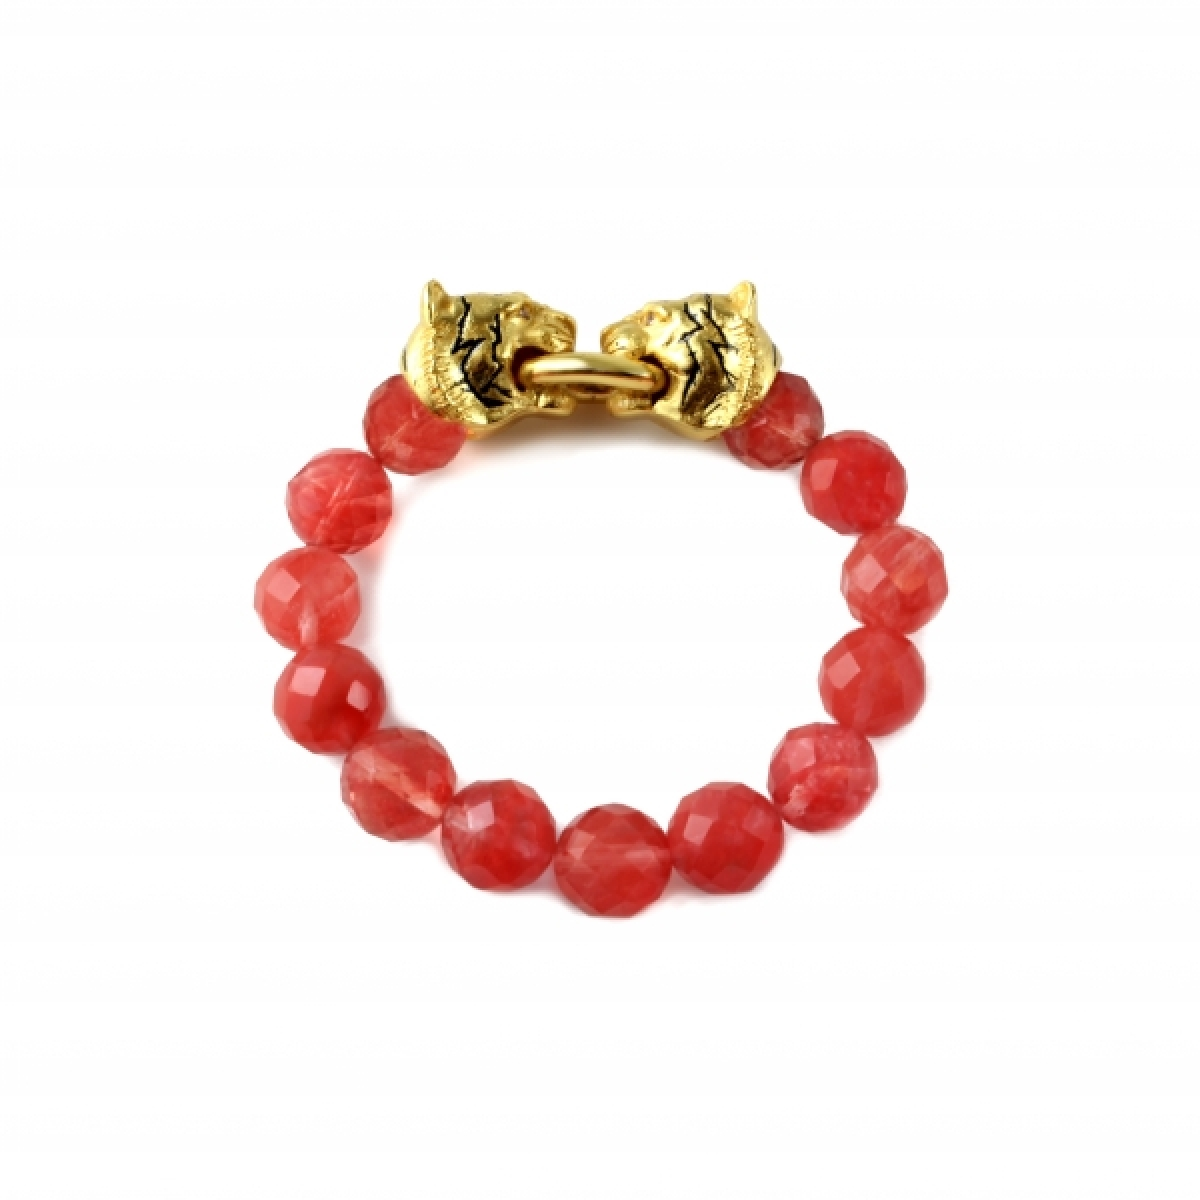 TIGER STRETCH CHERRY QUARTZ BRACELET